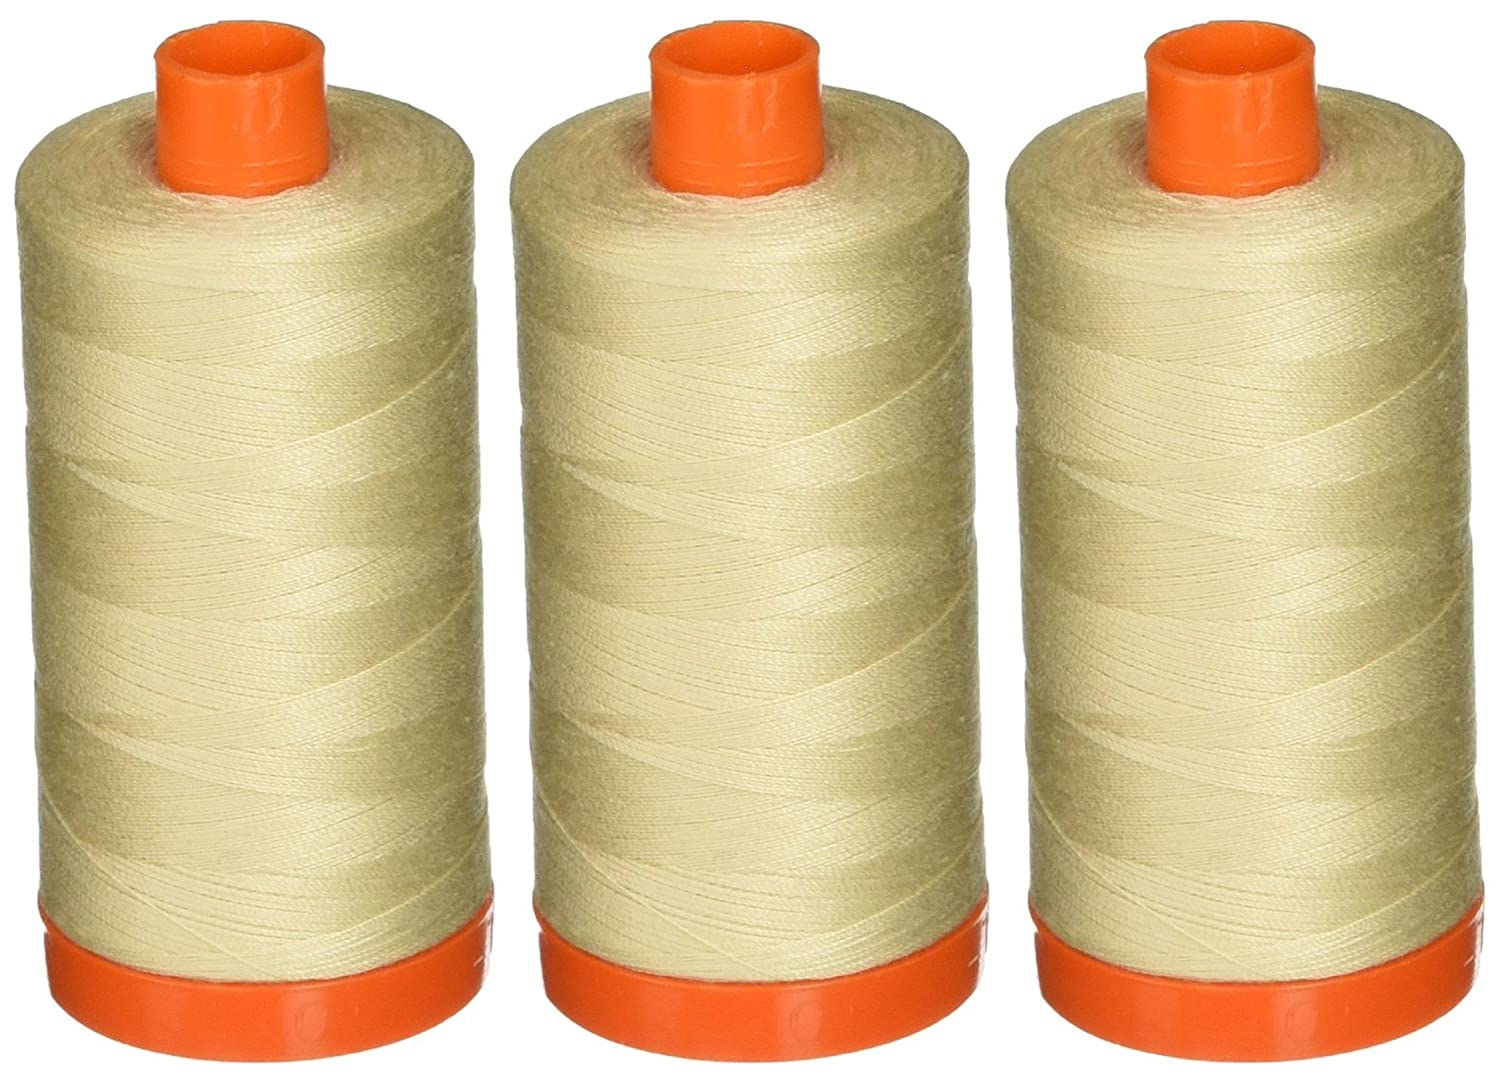 Aurifil A1050-2310 Solid 50 Weight 1422 yd Cotton Thread, Light Beige